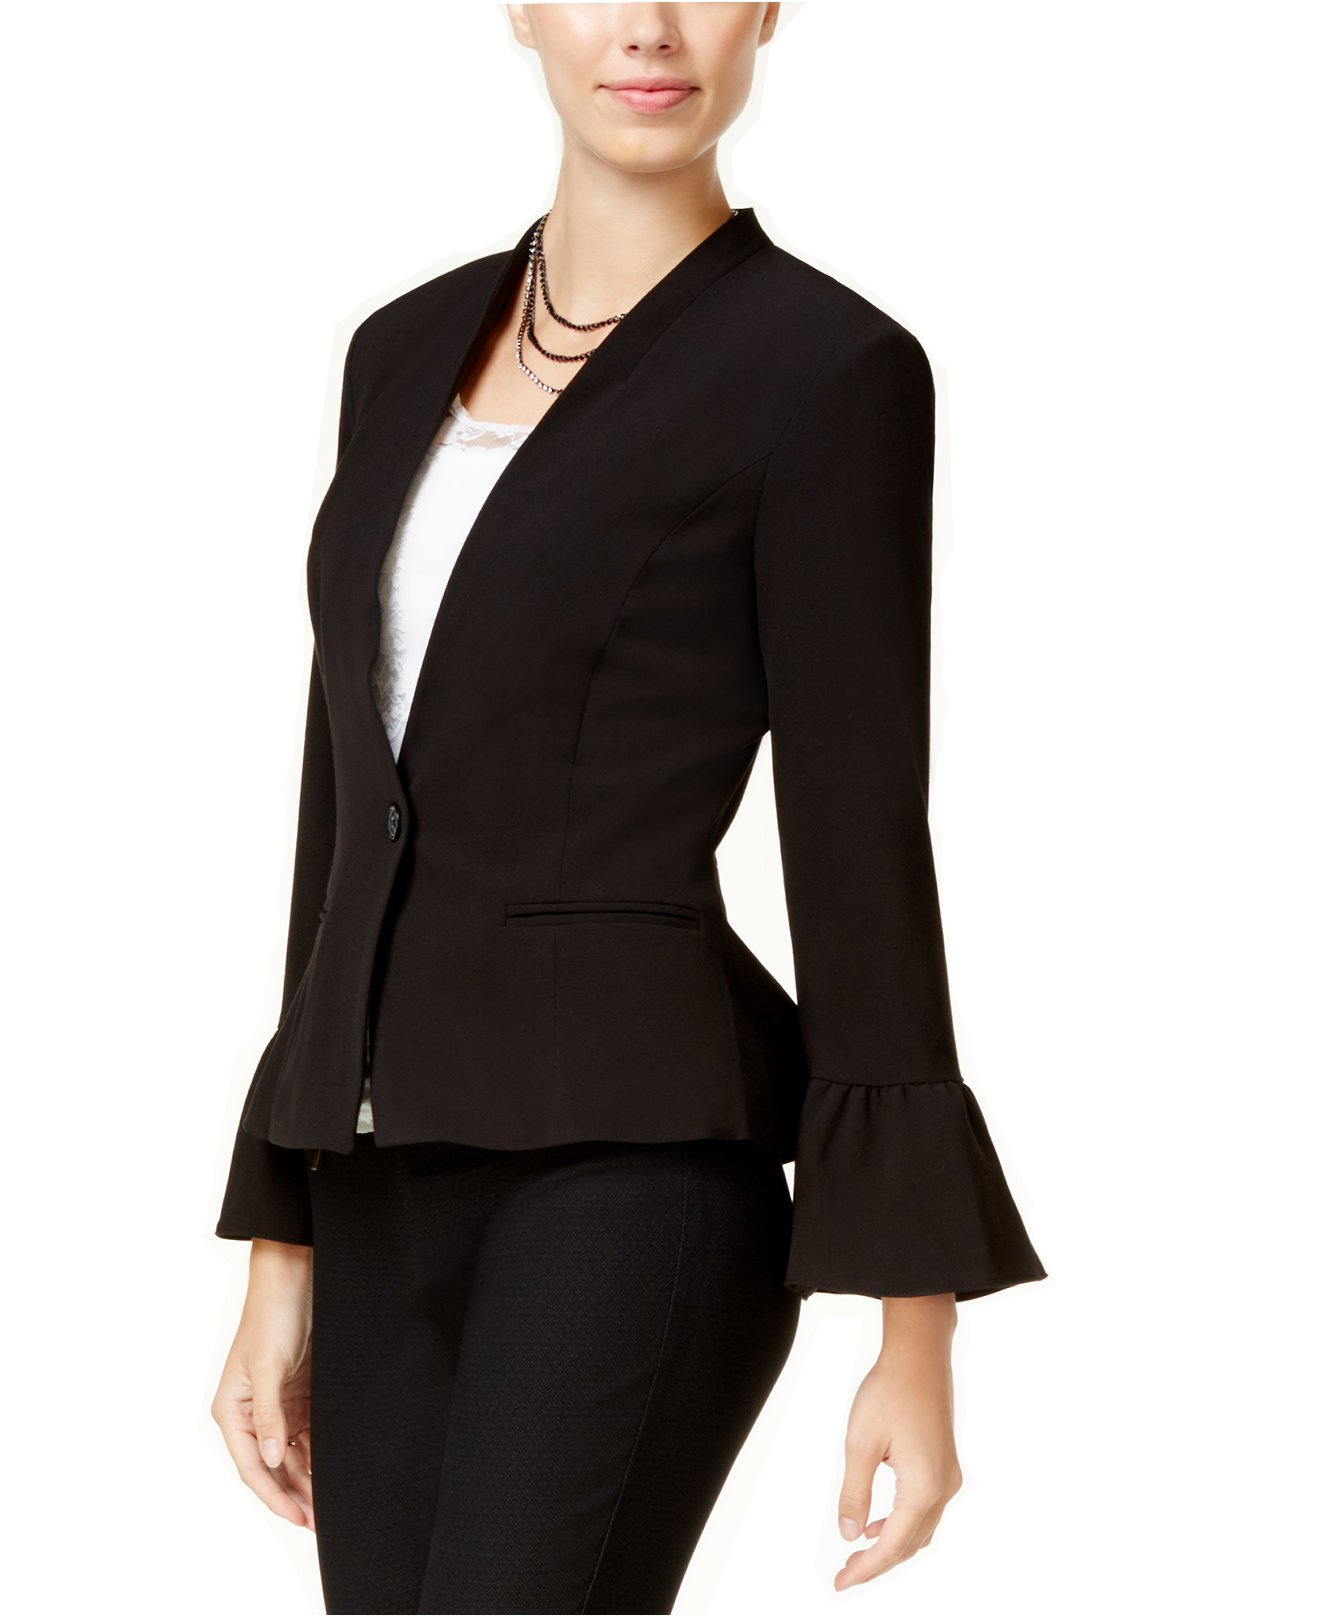 XOXO Juniors' Ruffled-Sleeve Peplum Blazer (Black, Large)